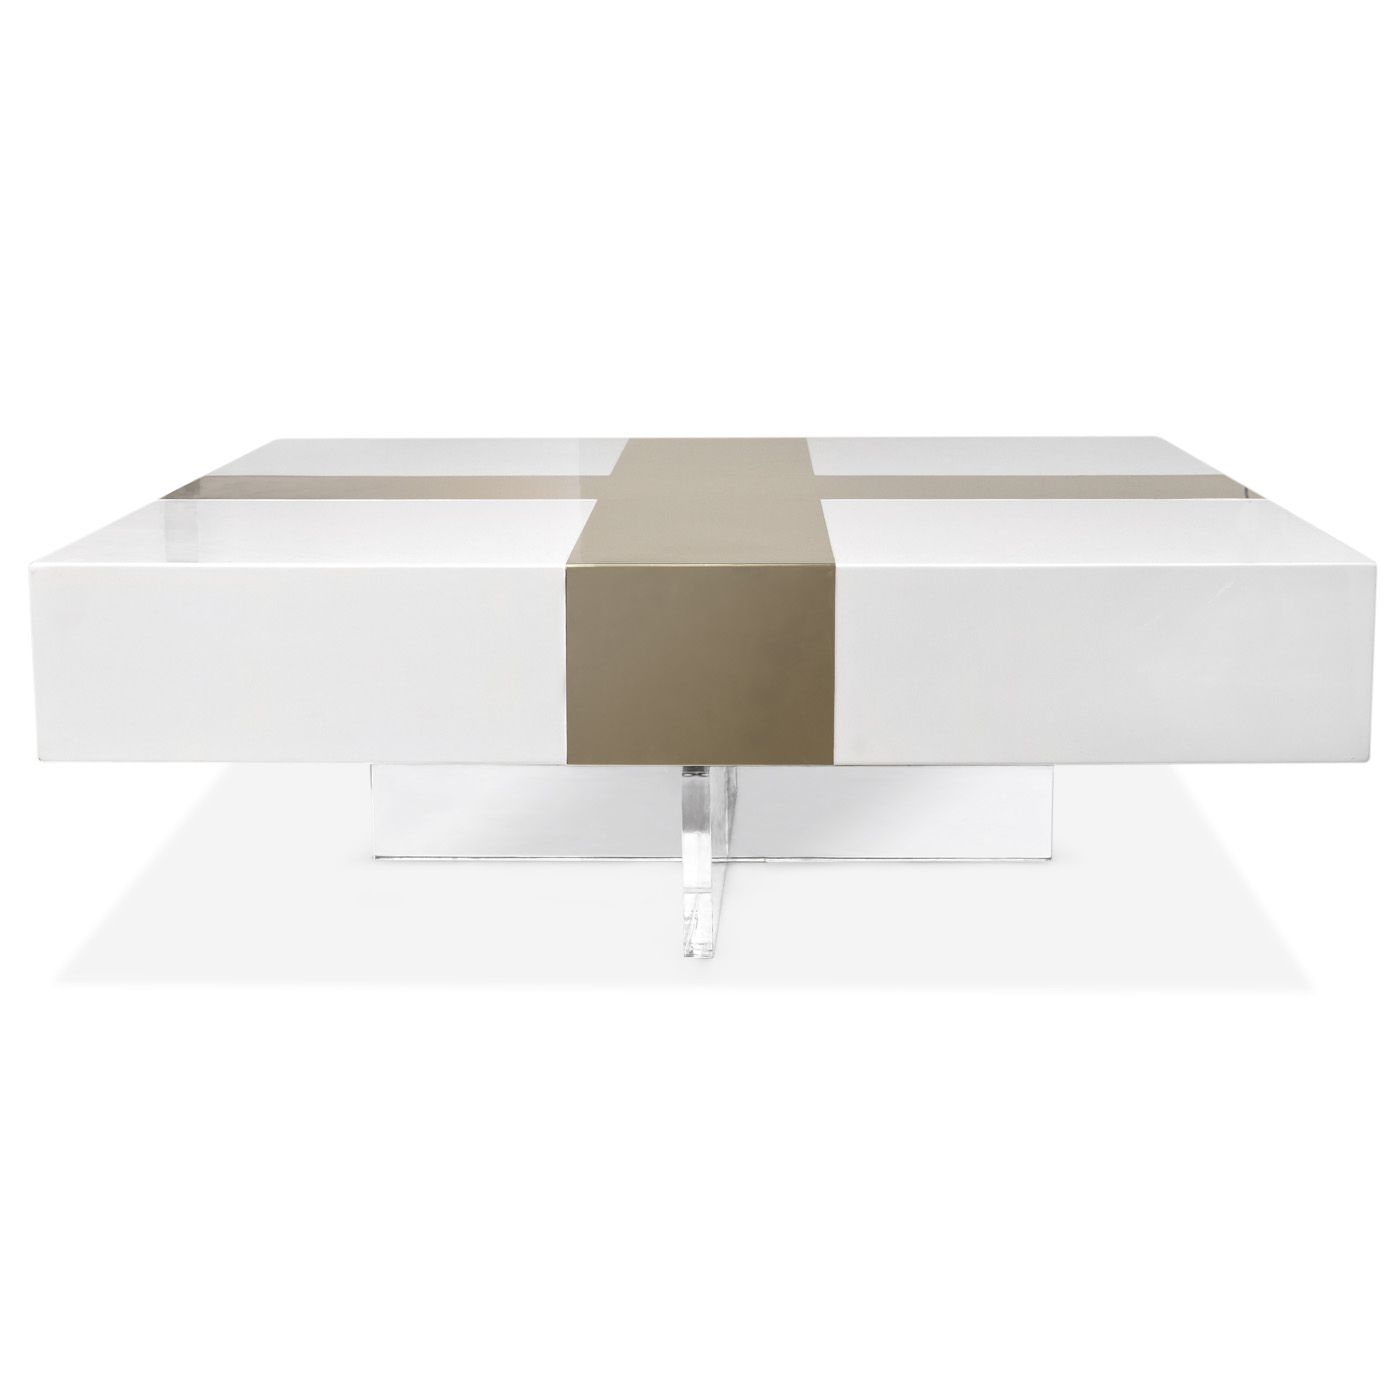 Jonathan Adler coffee table